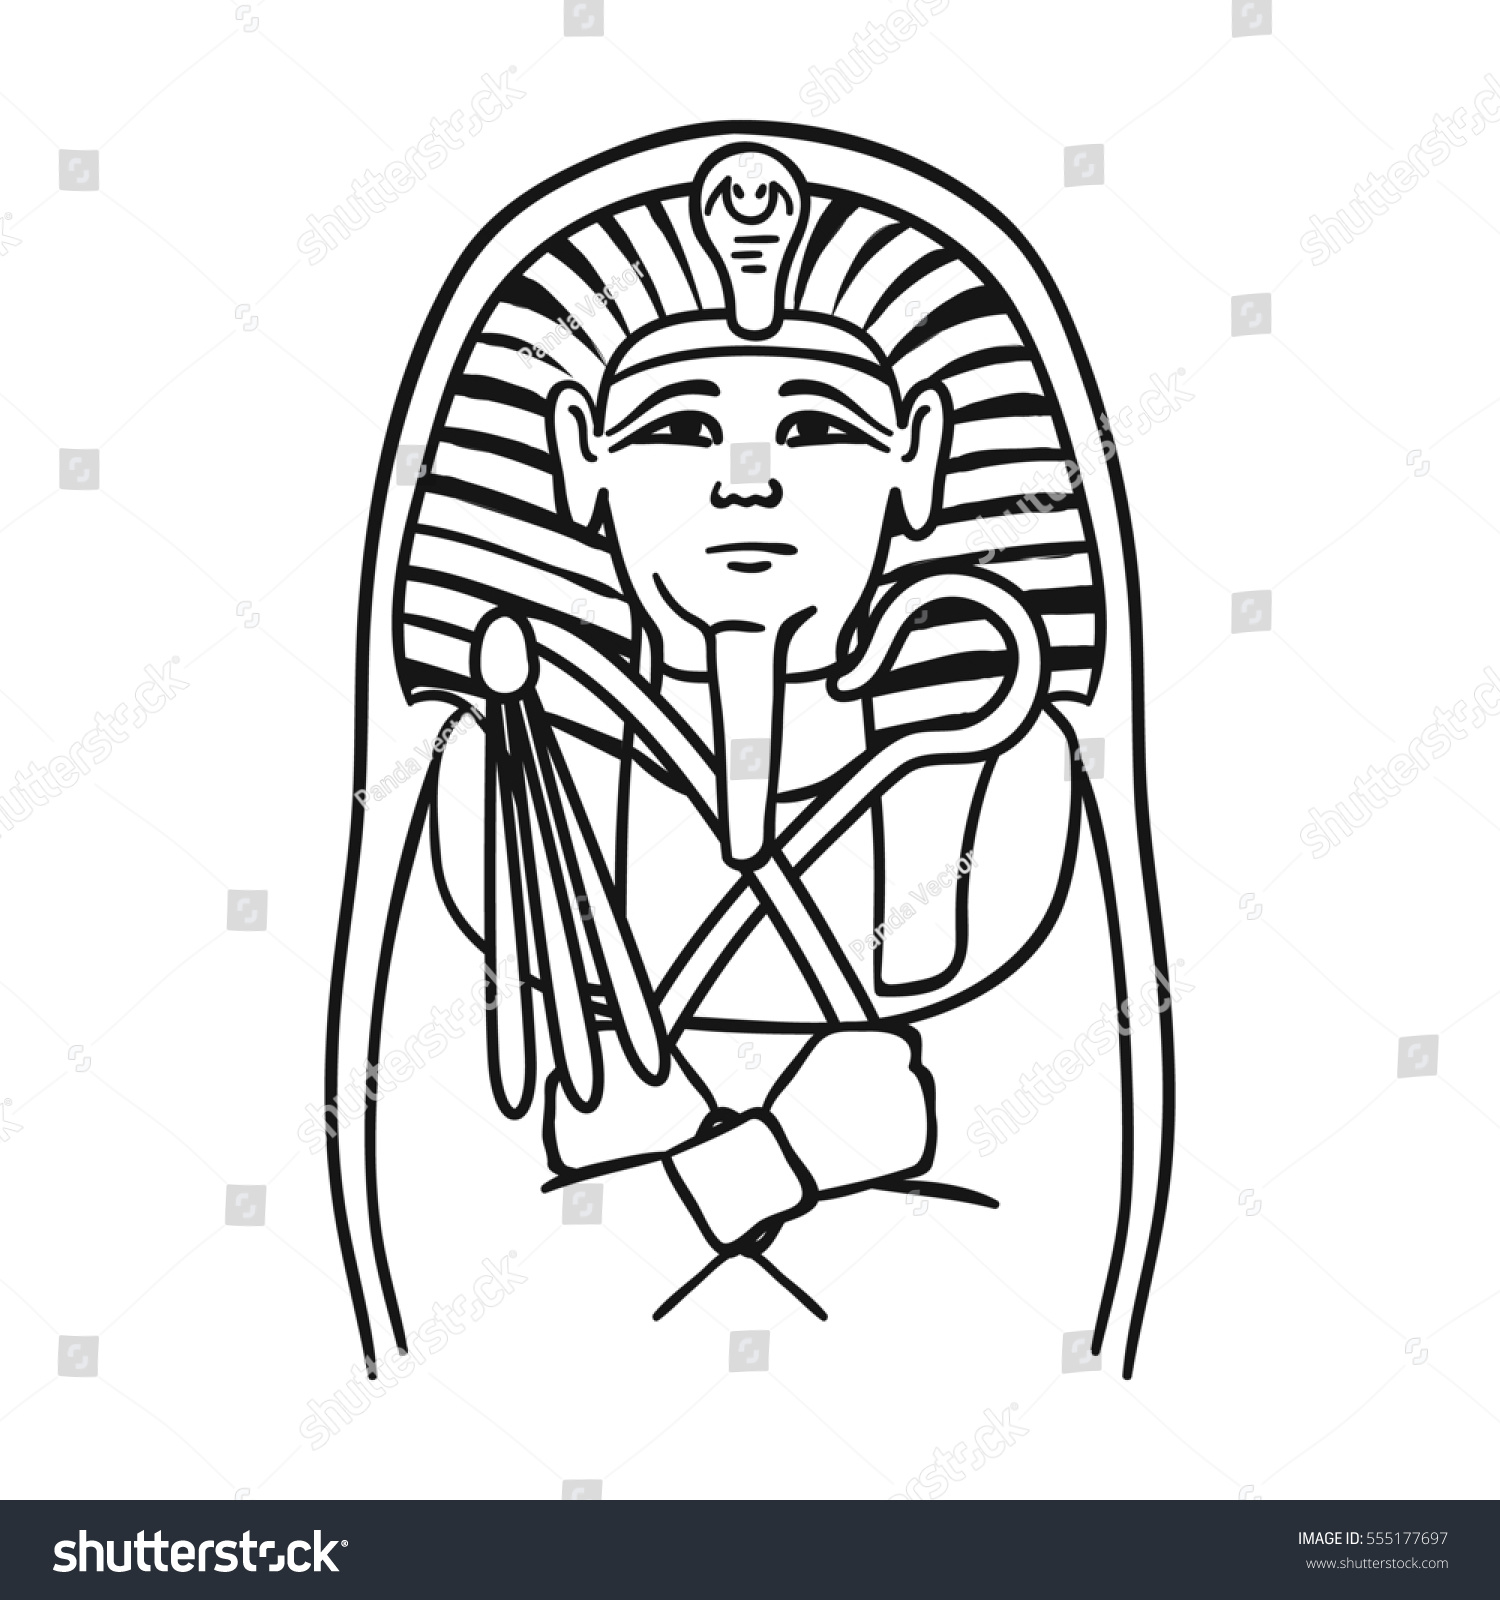 Egyptian pharaoh sarcophagus icon outline style stock illustration egyptian pharaoh sarcophagus icon in outline style isolated on white background museum symbol stock rastr buycottarizona